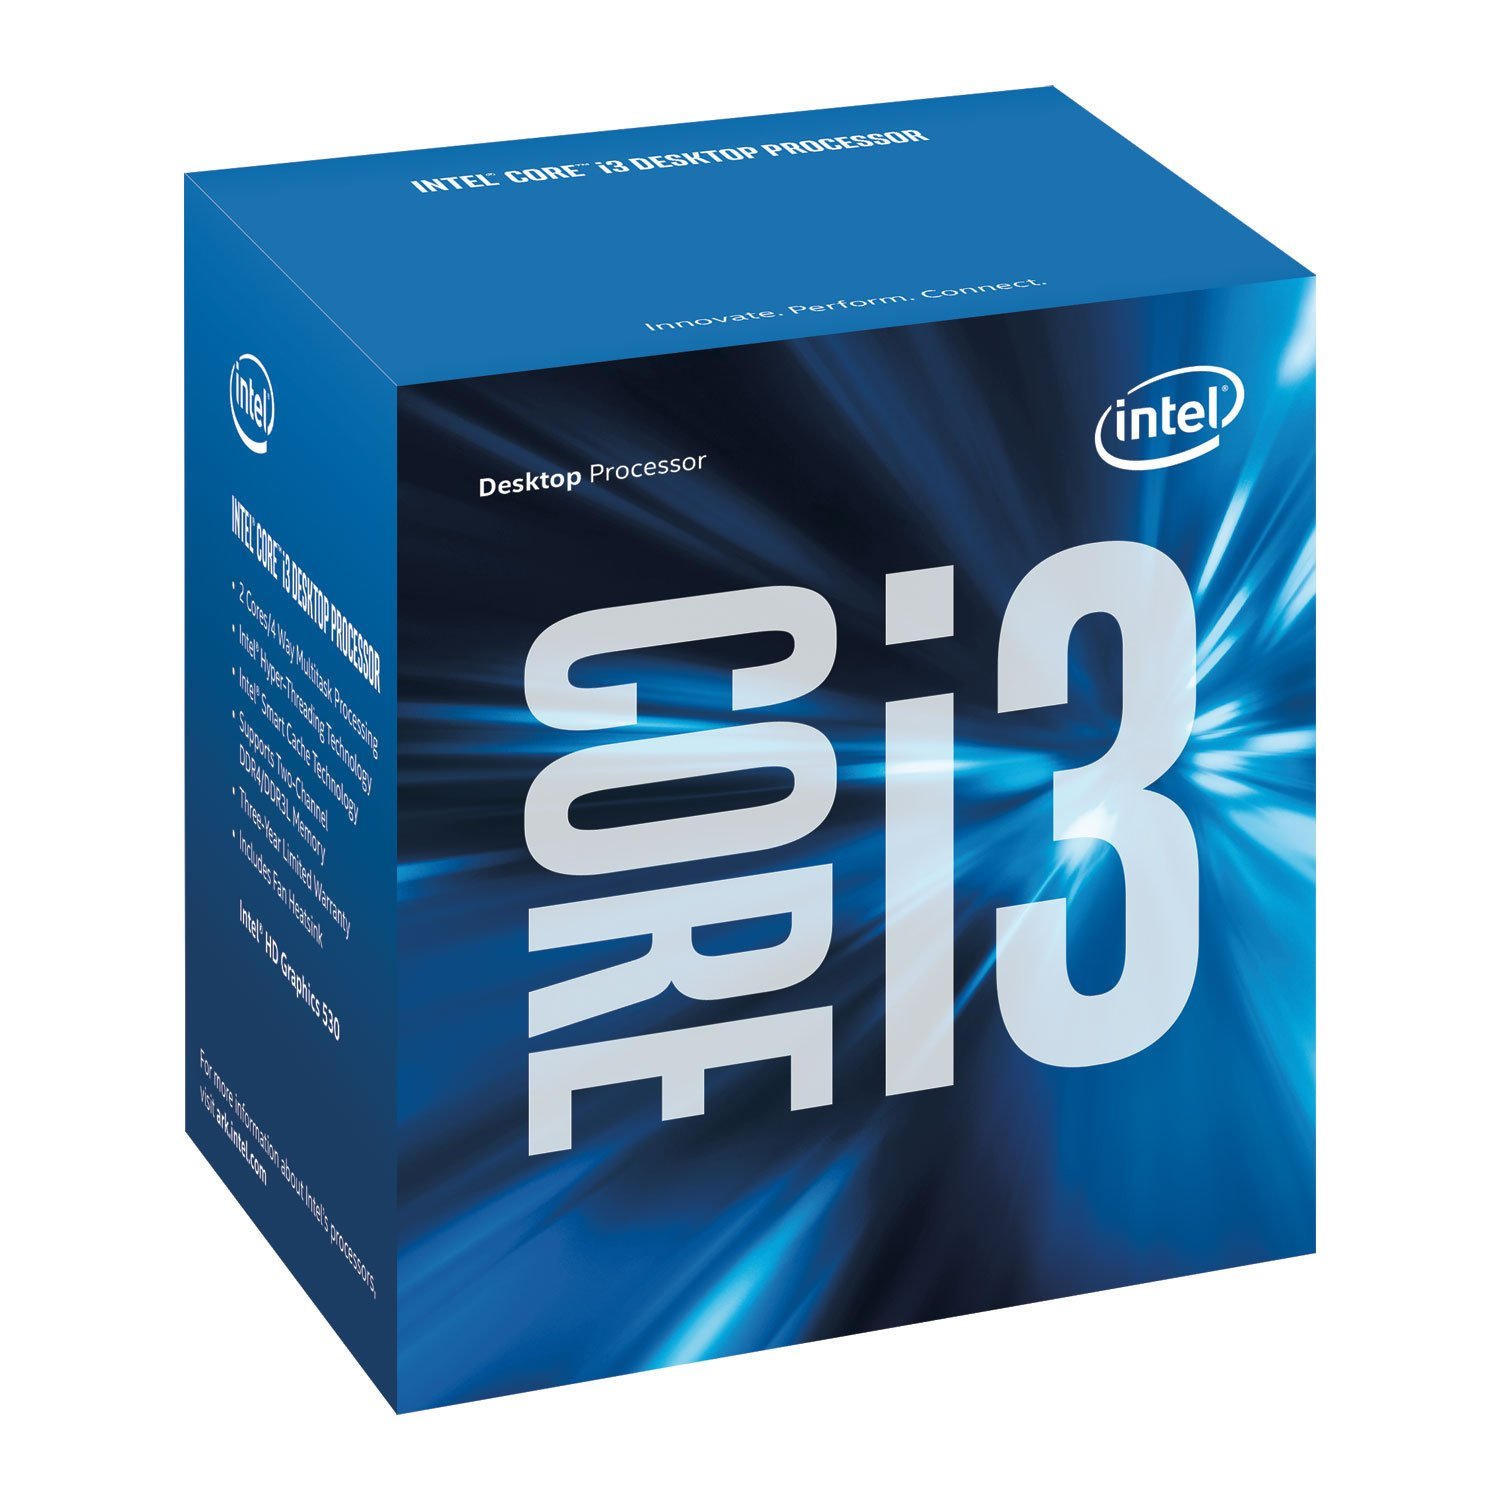 Intel Core i3-6100 6th Gen